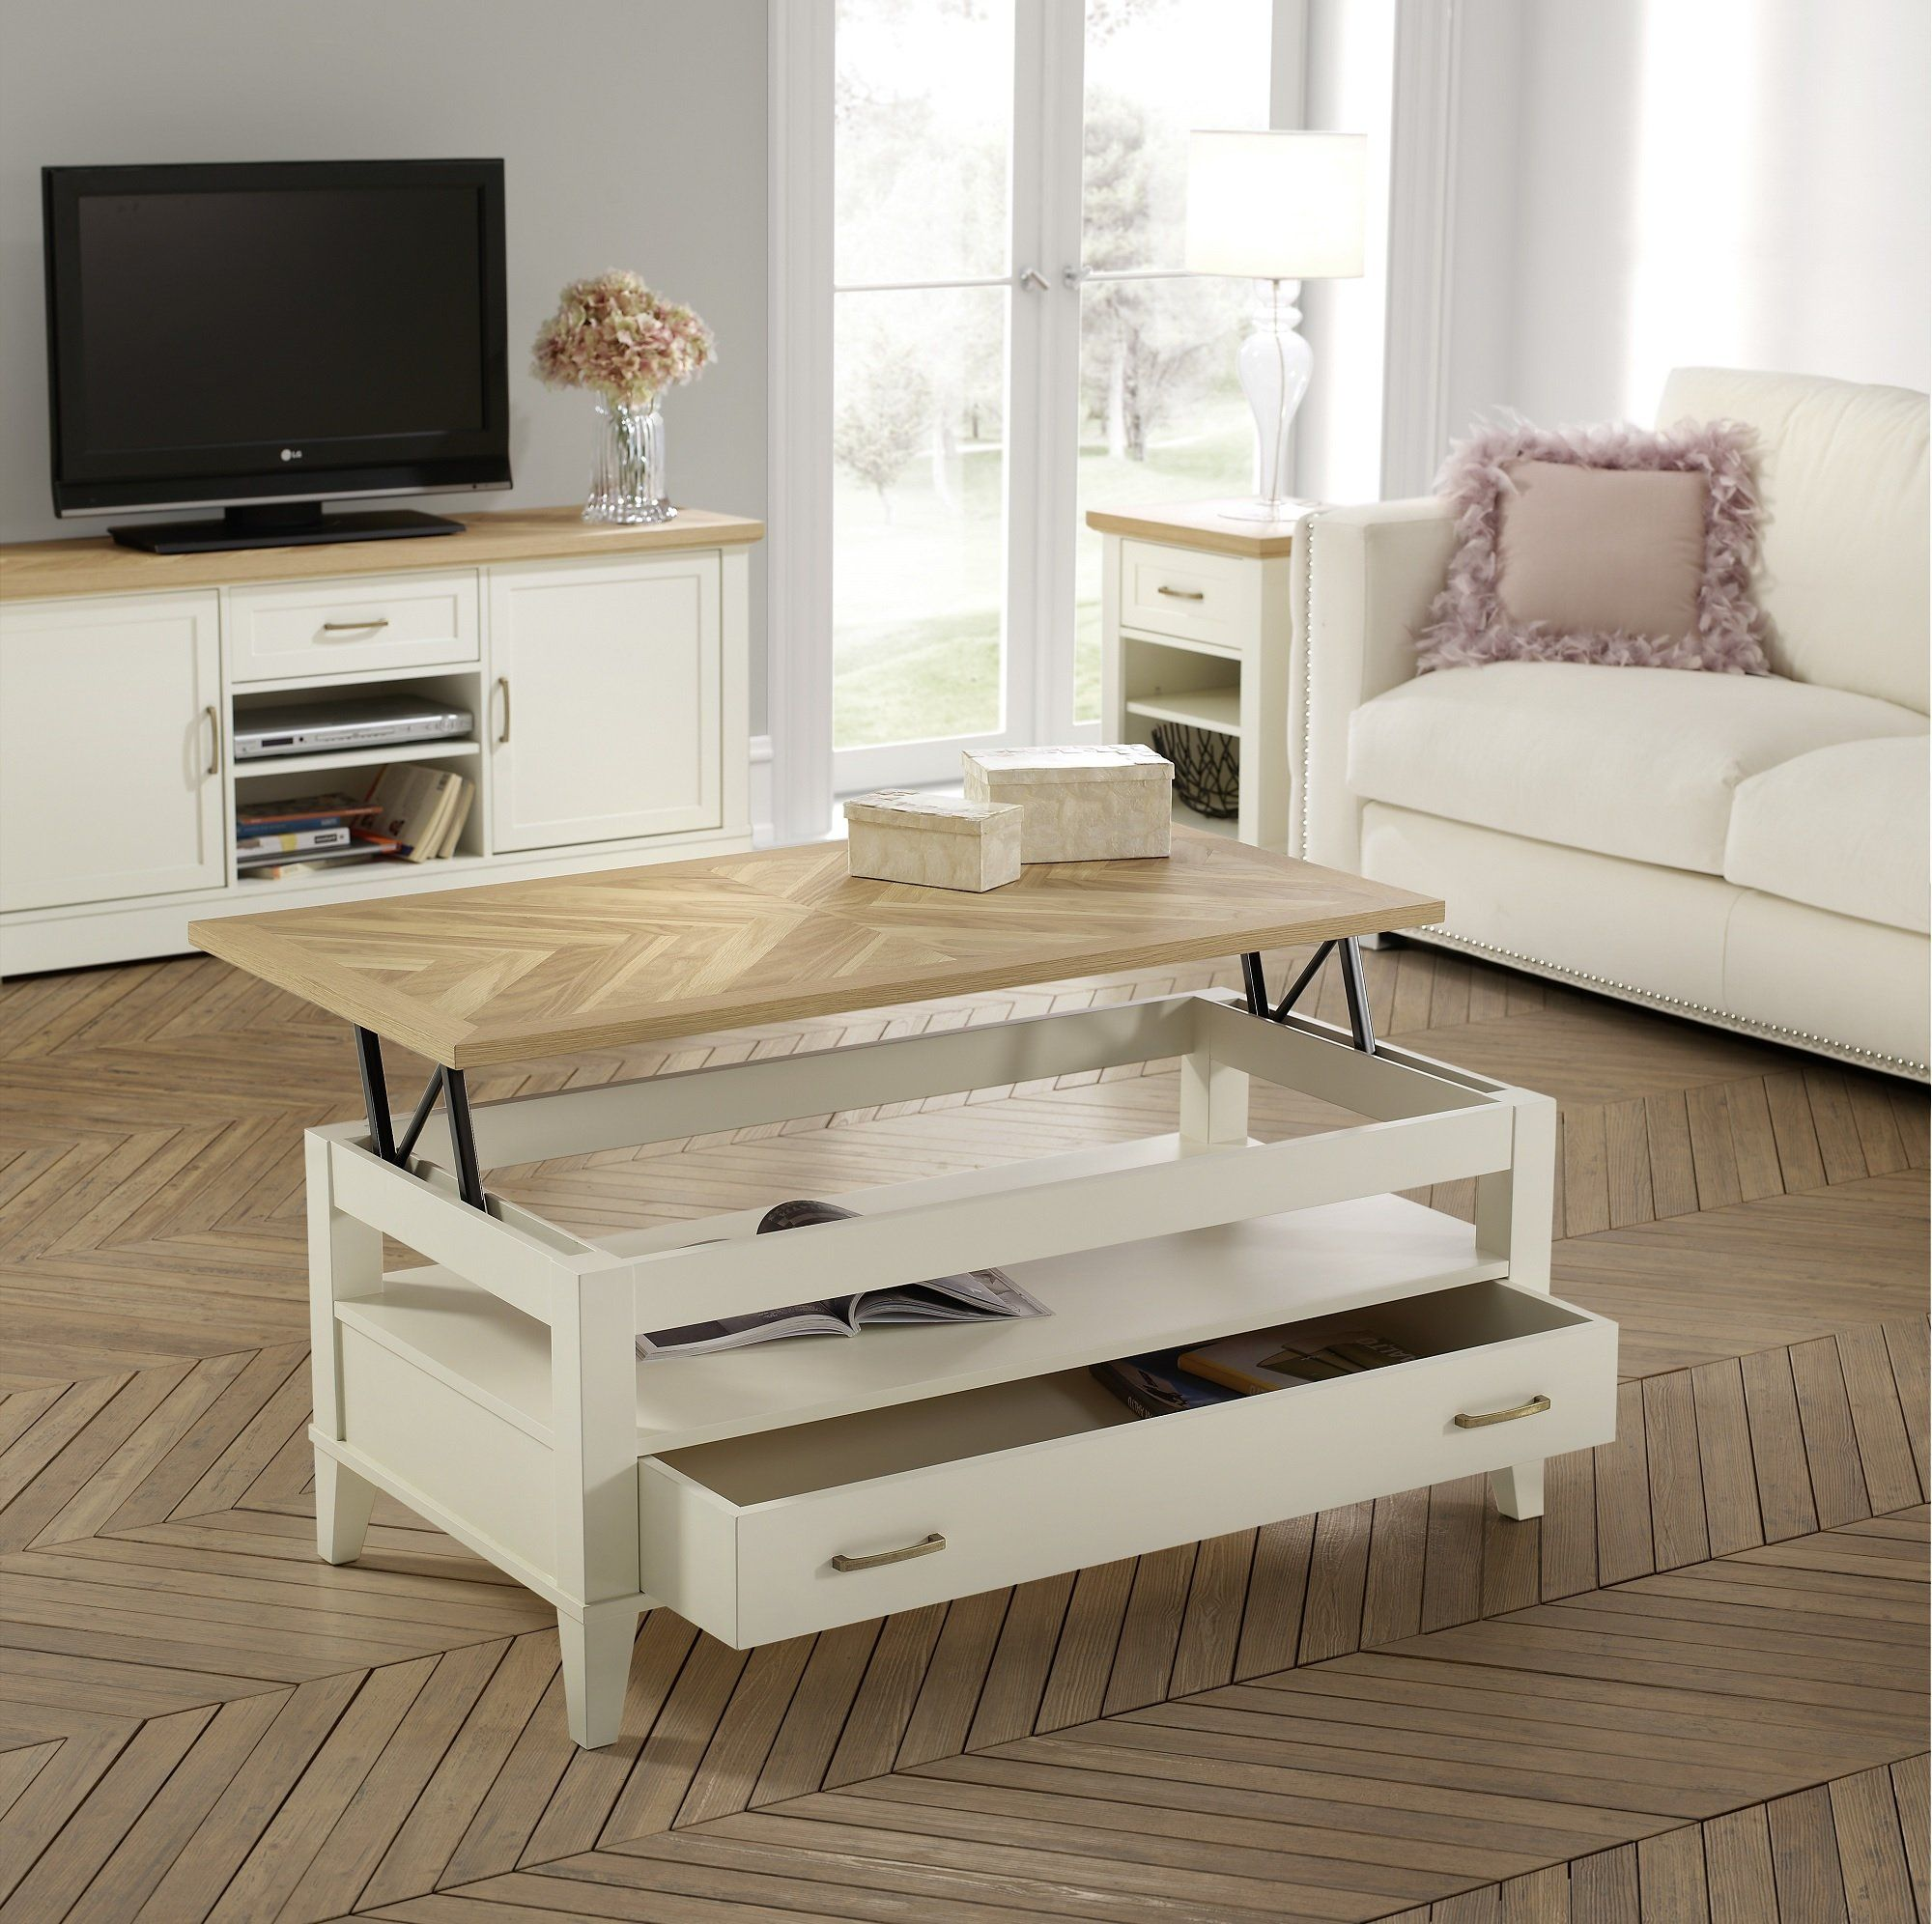 Carson Lift Top Solid Wood Coffee Table Furniture Agency Coffee Table Solid Wood Coffee Table Coffee Table Wood [ 1992 x 2000 Pixel ]